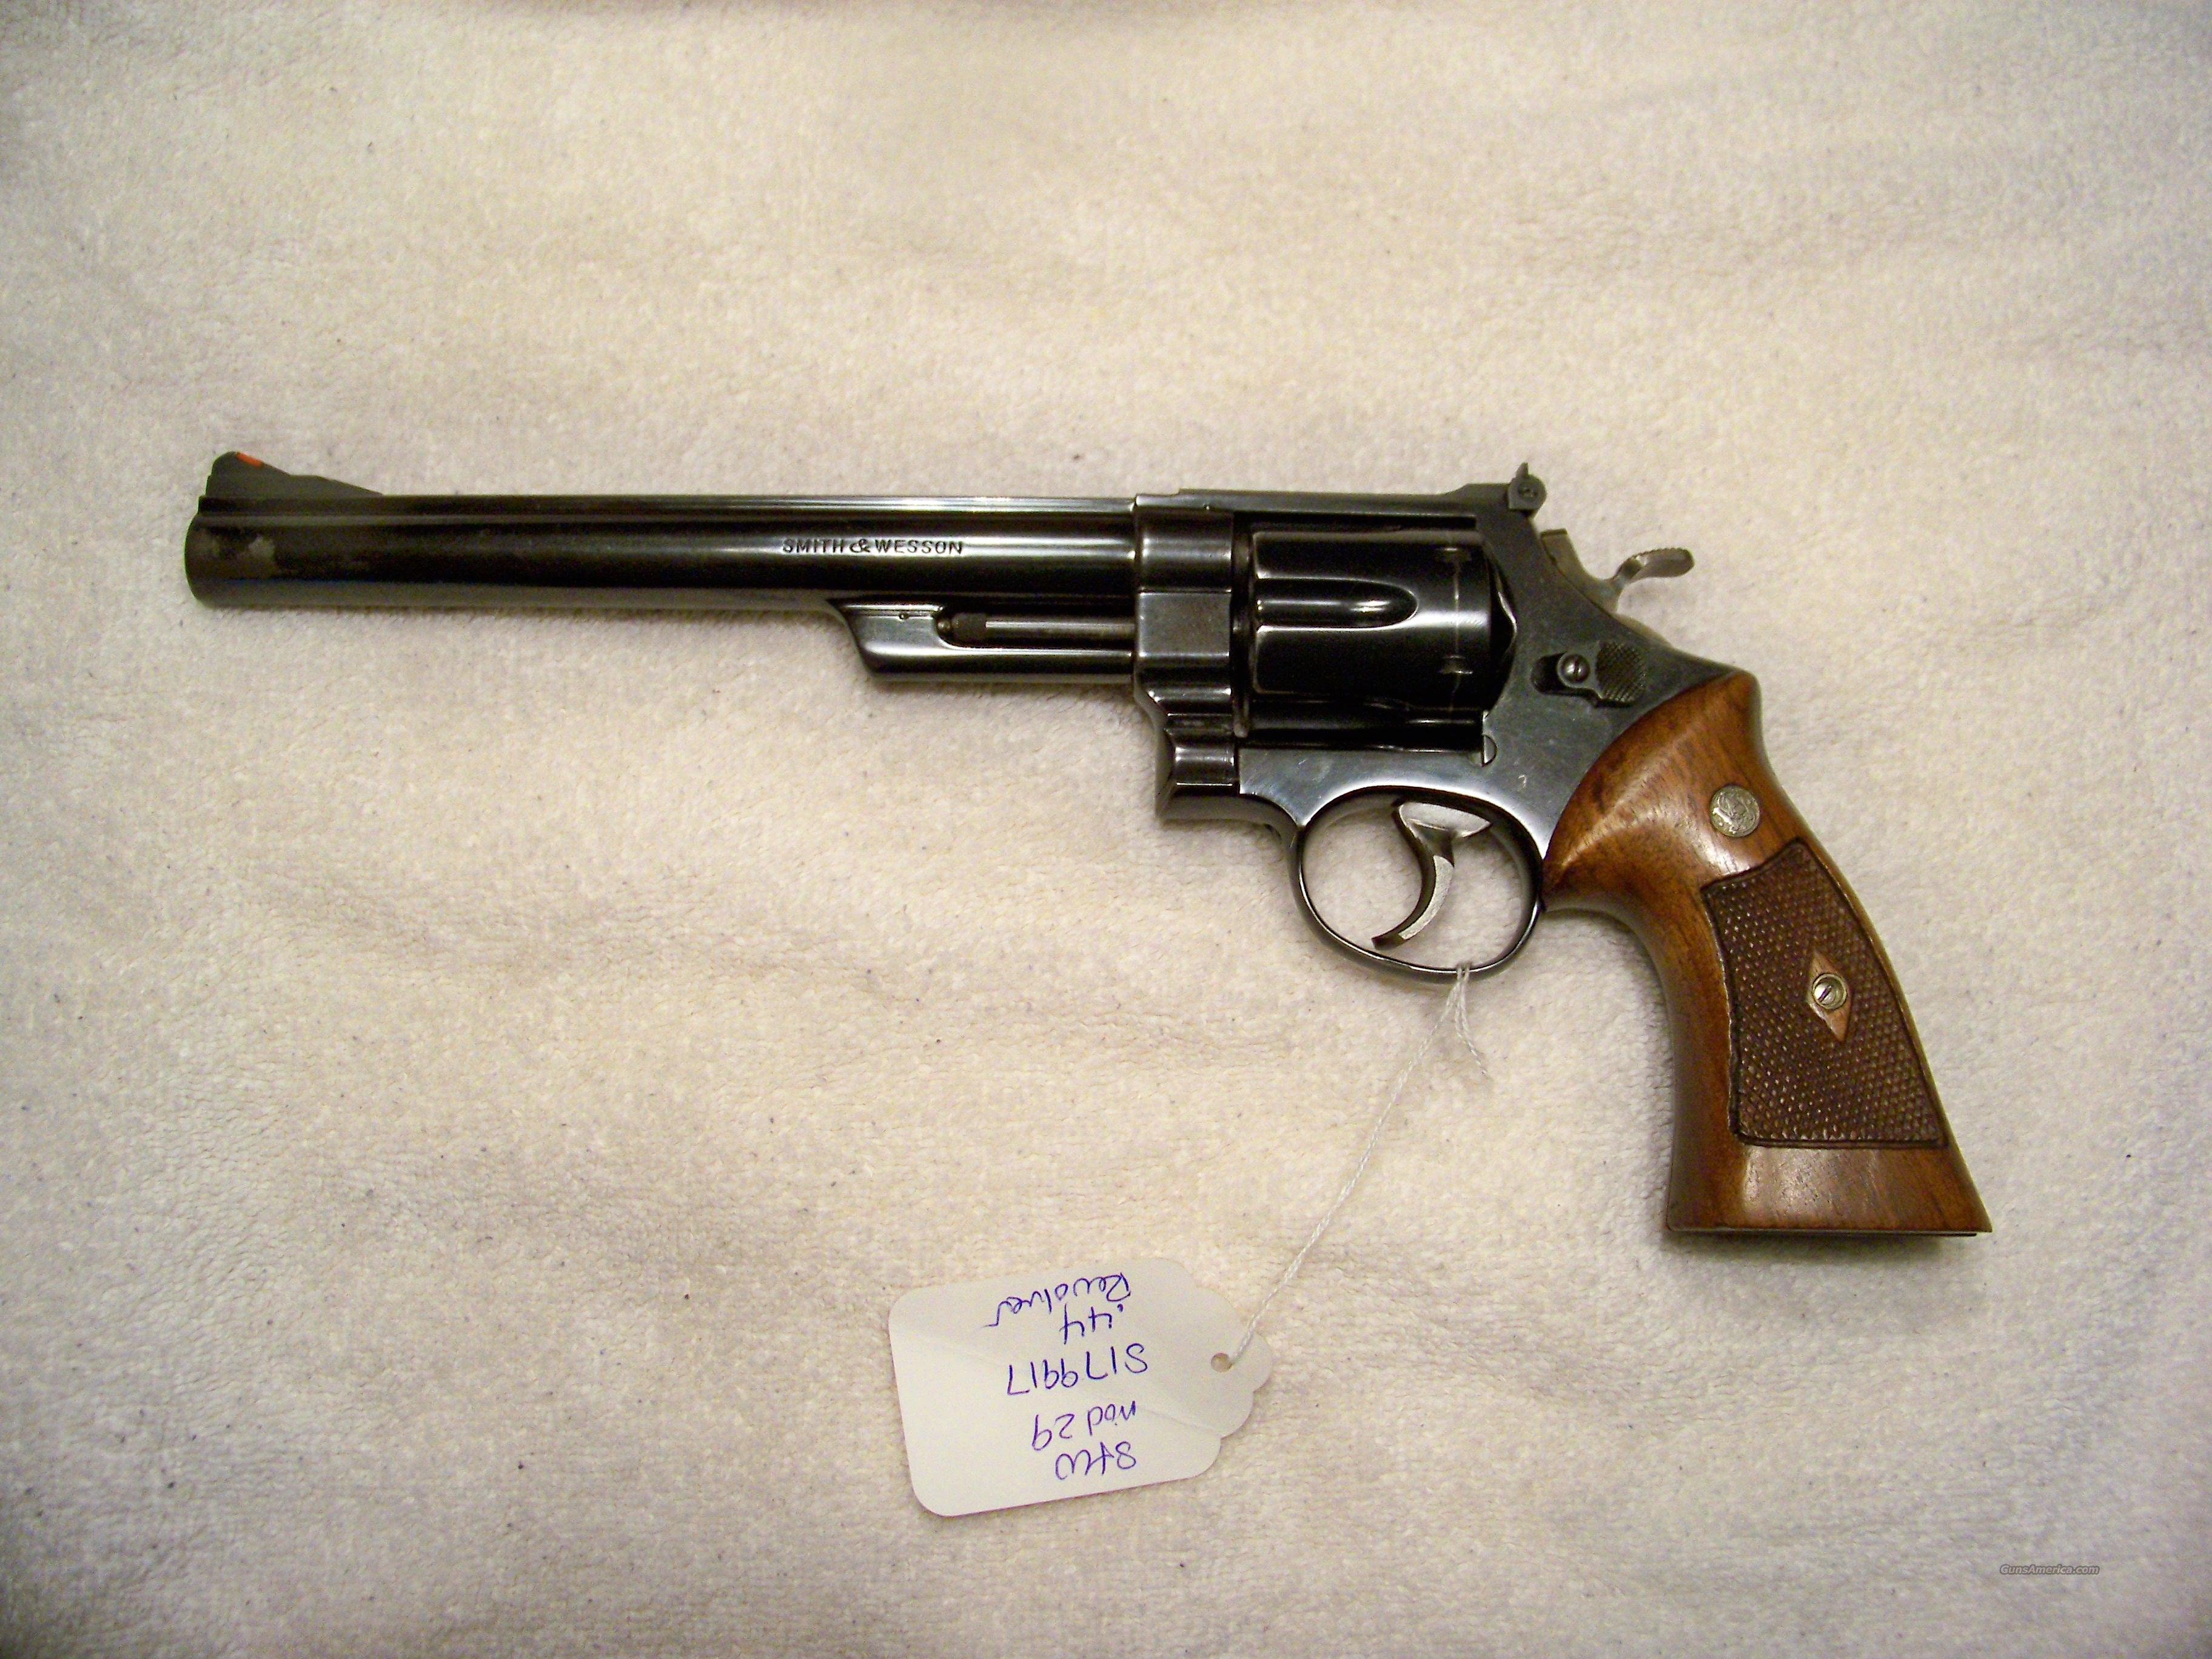 SMITH & WESSON PRE MODEL 29 (4) SCREW 44 MAG  Guns > Pistols > Smith & Wesson Revolvers > Full Frame Revolver